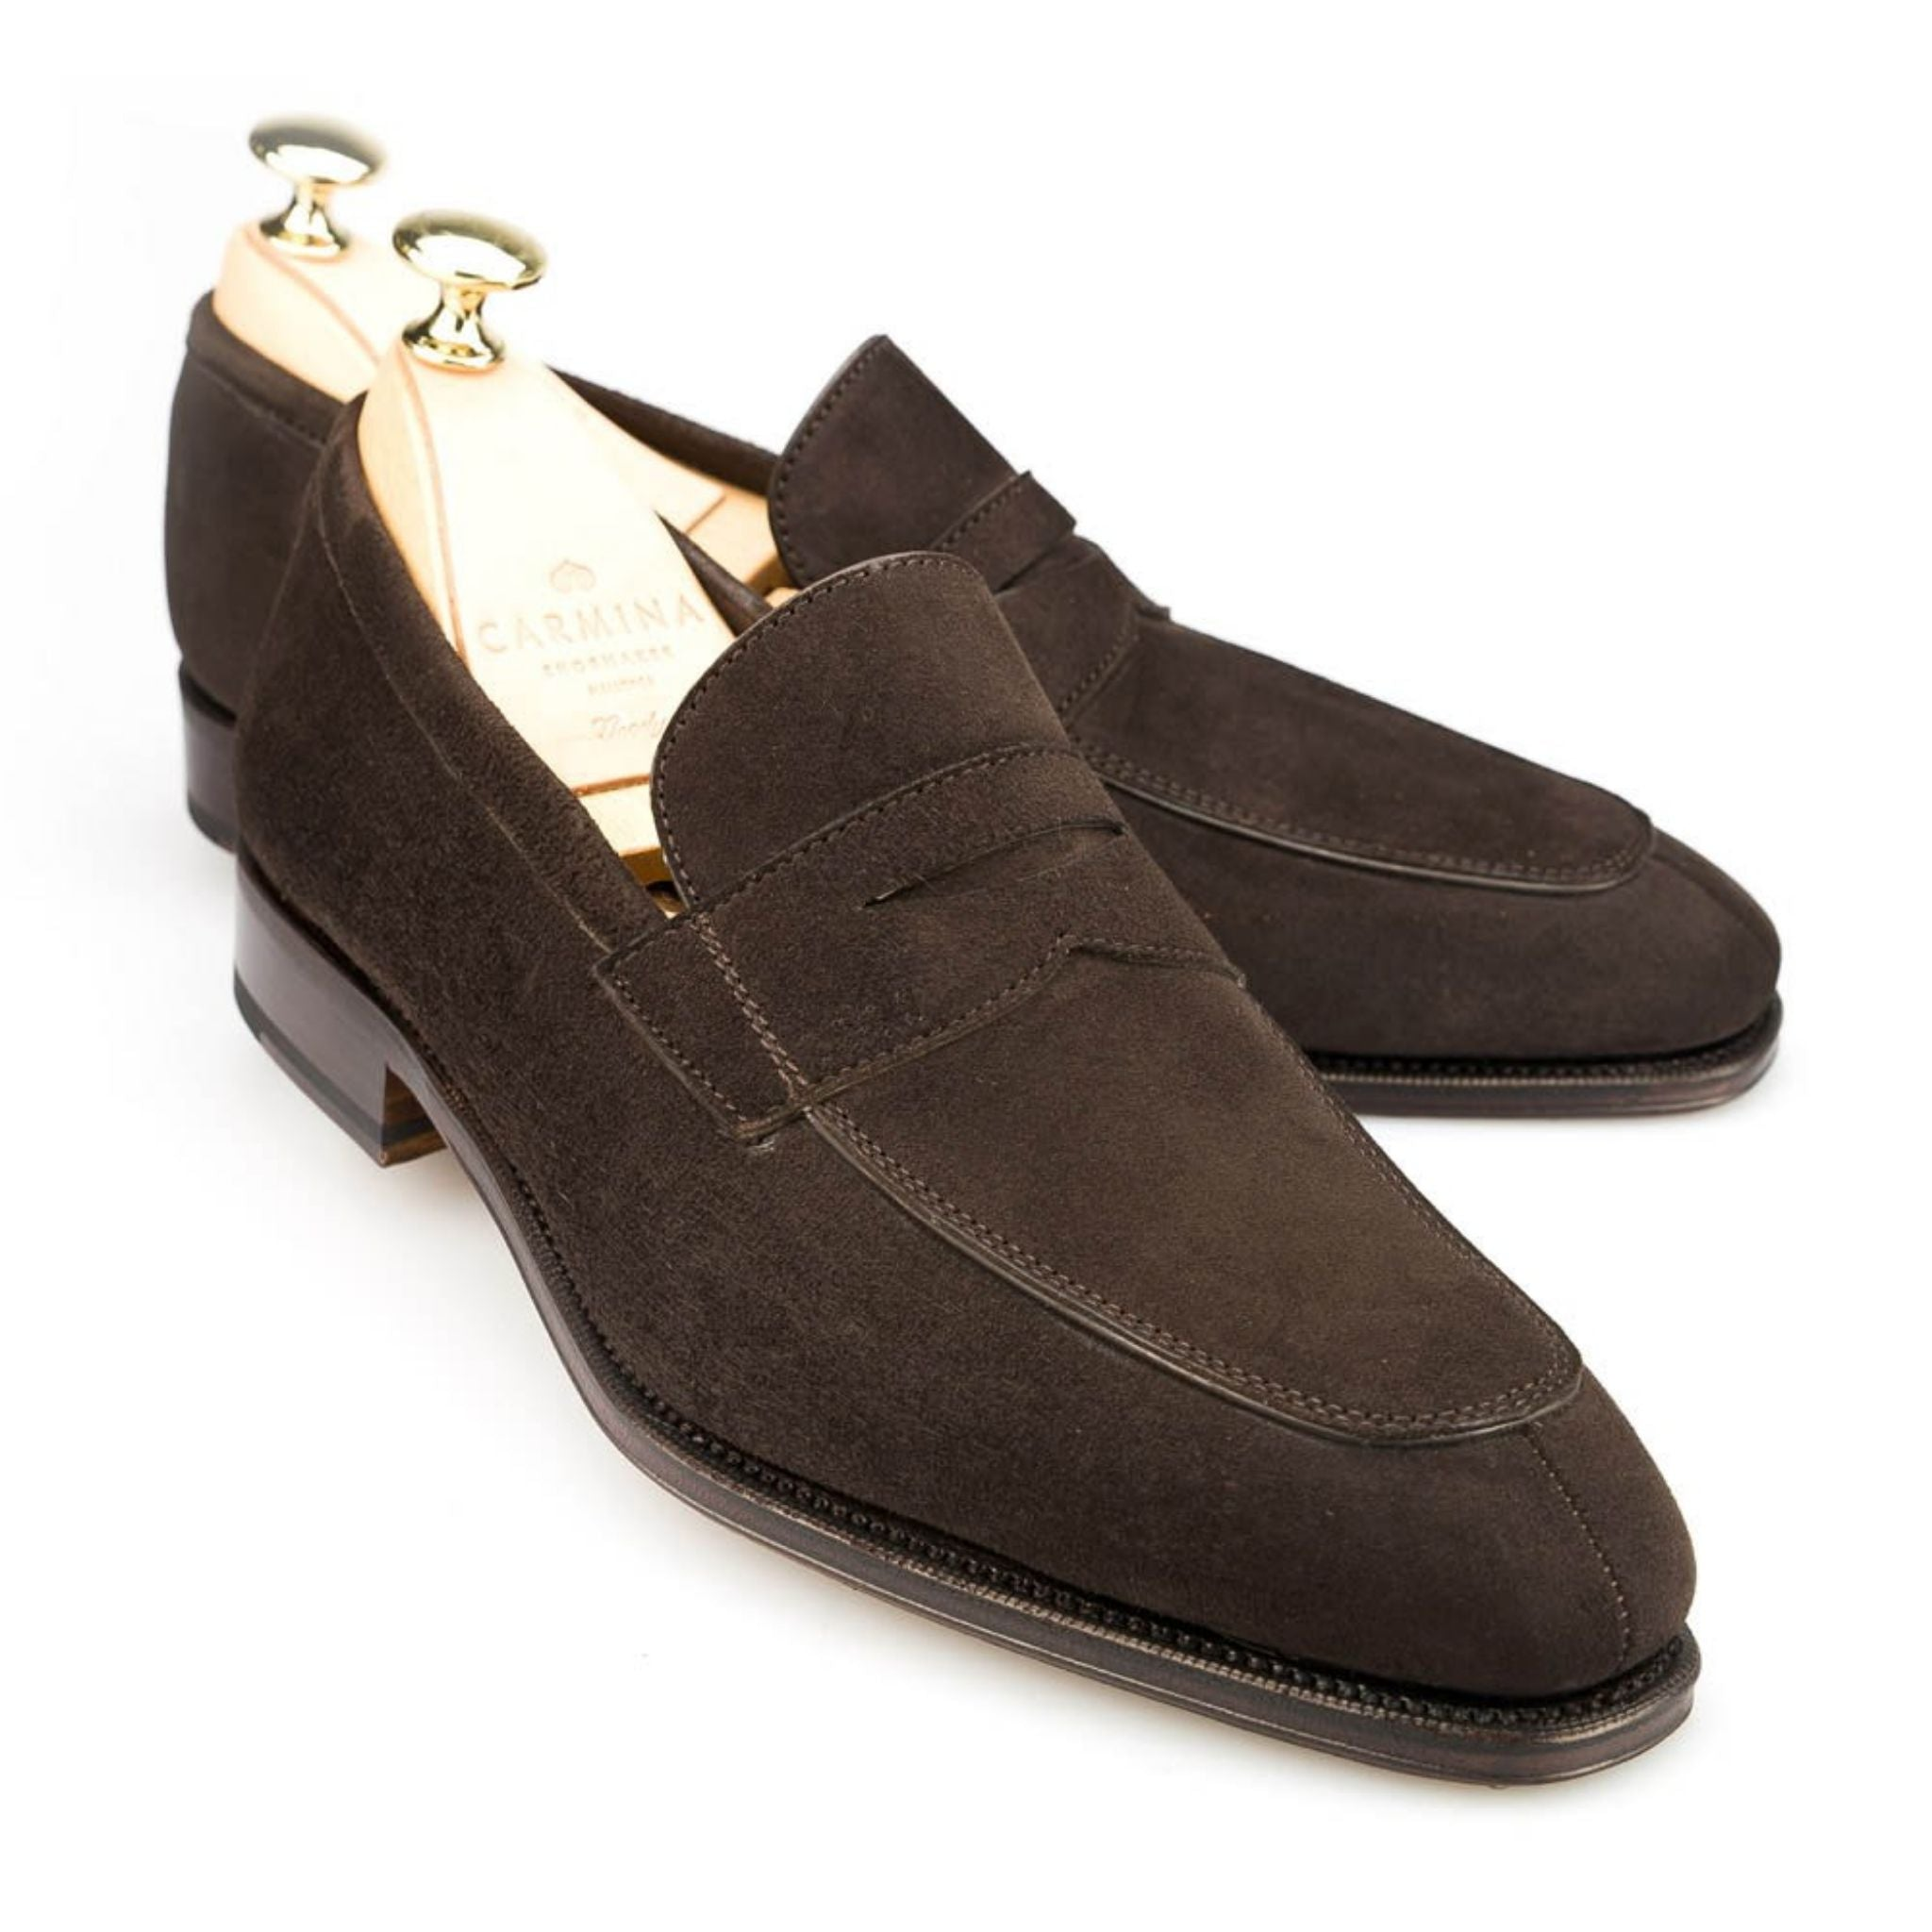 5x Penny loafers - Carmina dark brown suede